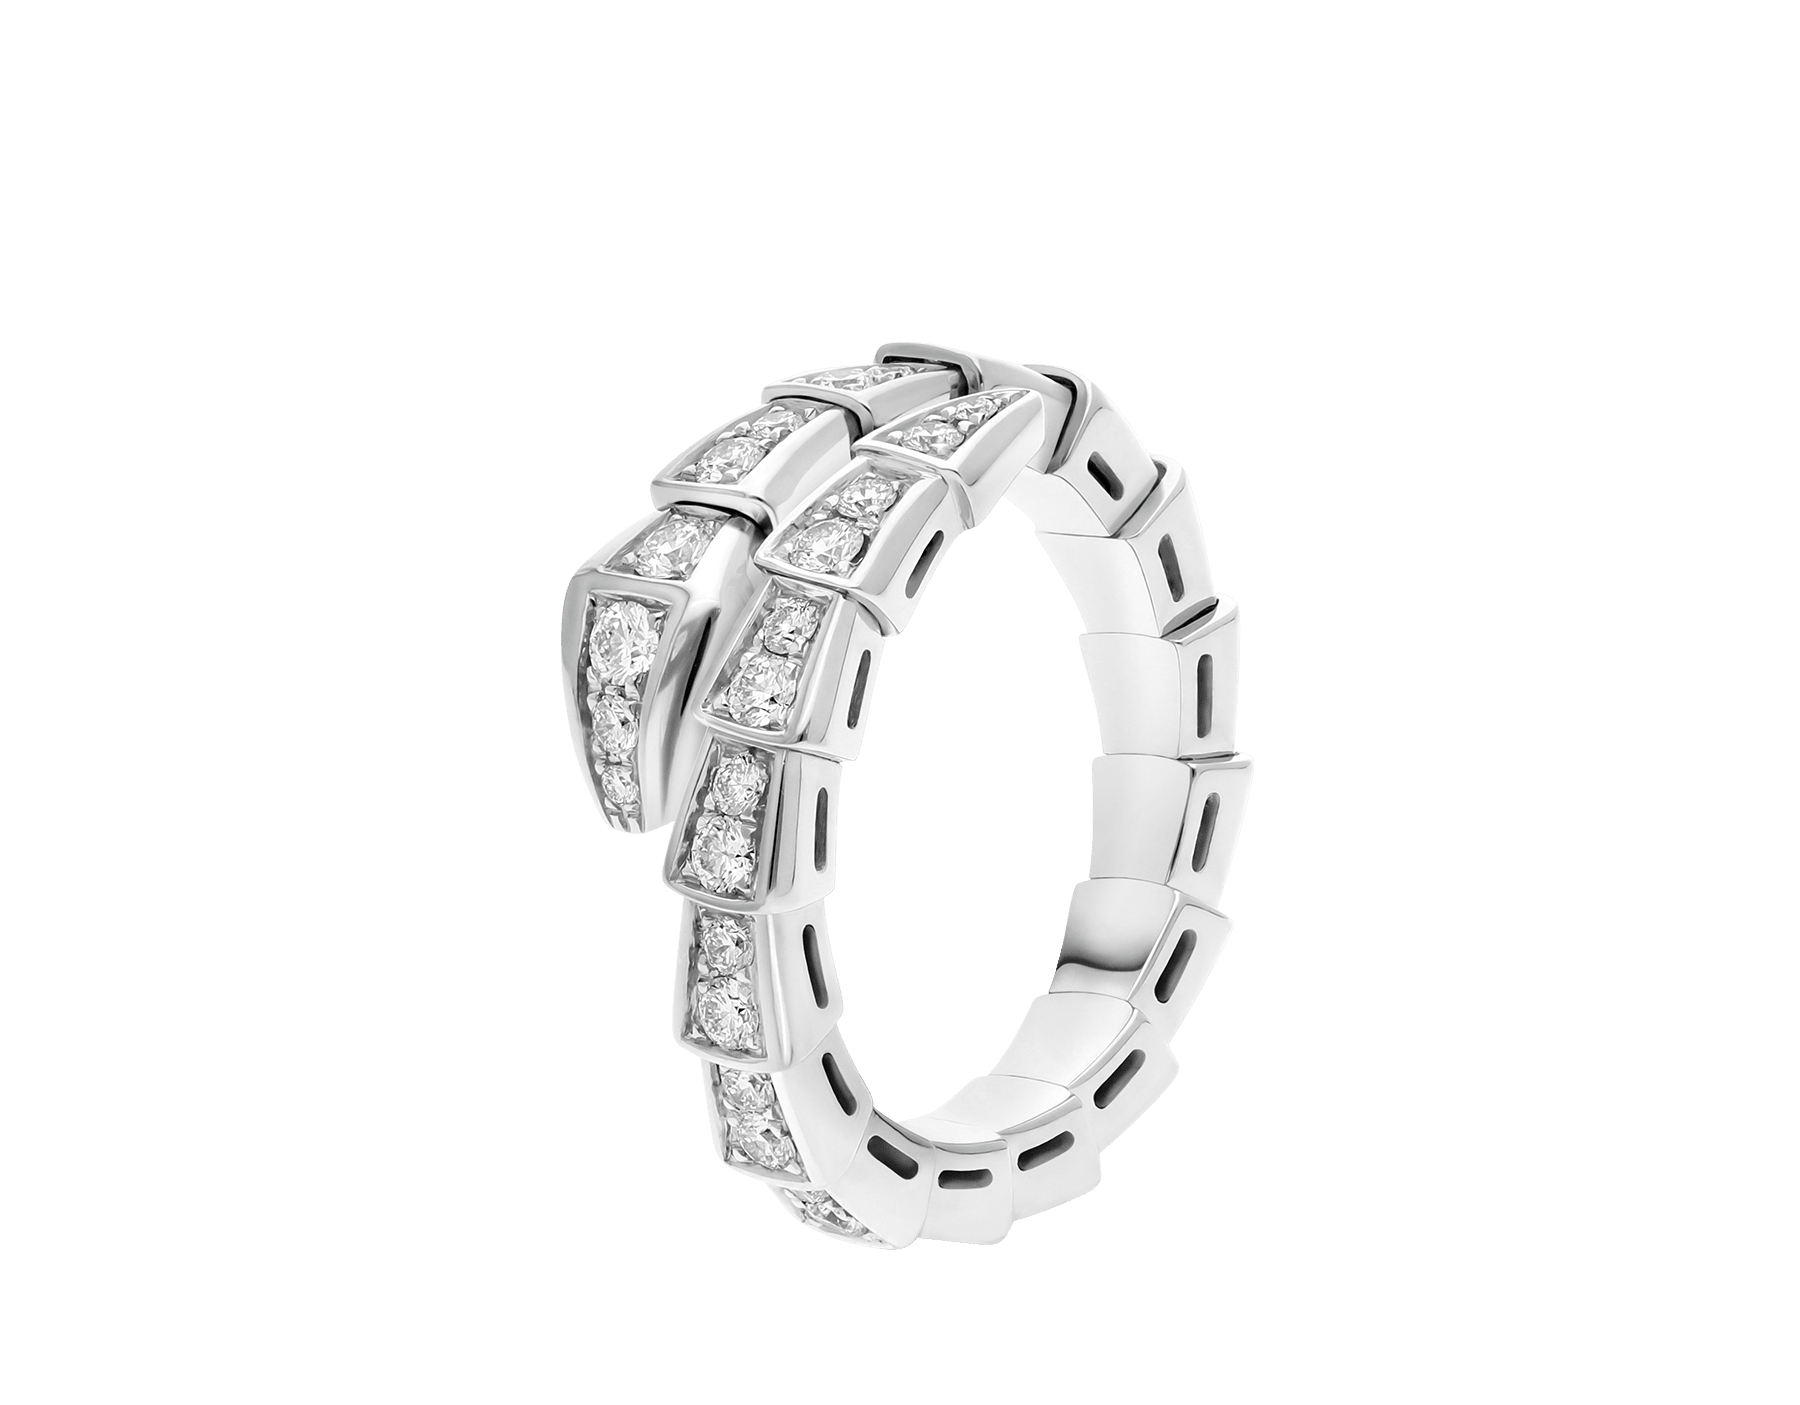 Serpenti Viper 18 kt white gold ring set with pavé diamonds. AN858111 image 1